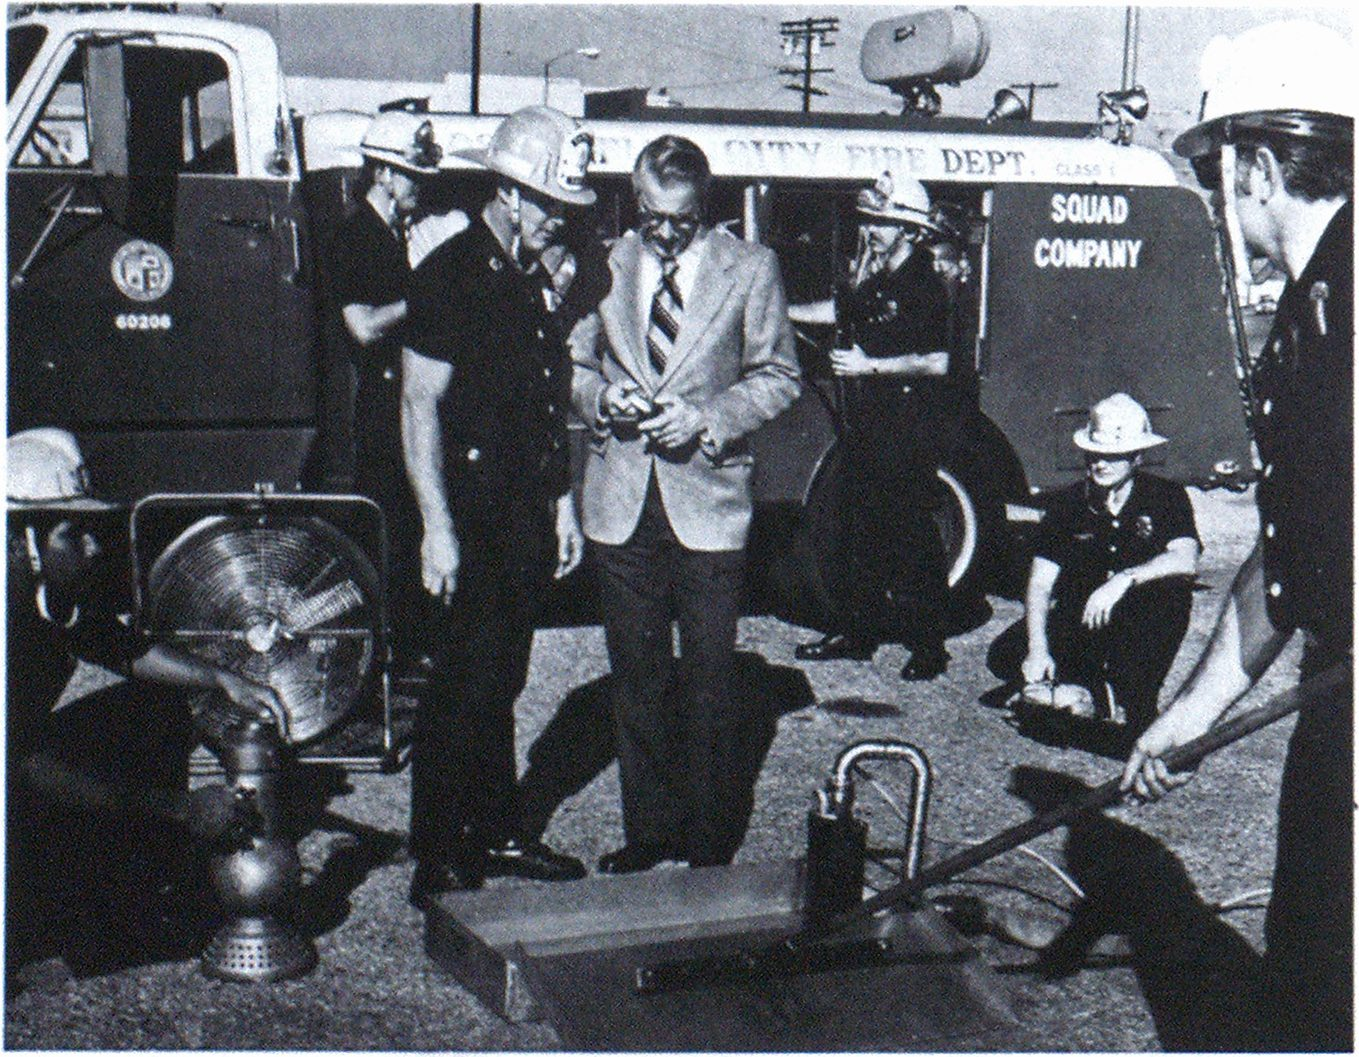 Equipment carried by Squad 4, one of three recently activated squads in the Los Angeles City Fire Department, is viewed by Chief John Gerard, in civilian clothes. The squad supplies manpower and special equipment to companies that lost personnel in retrenchment caused by Proposition 13